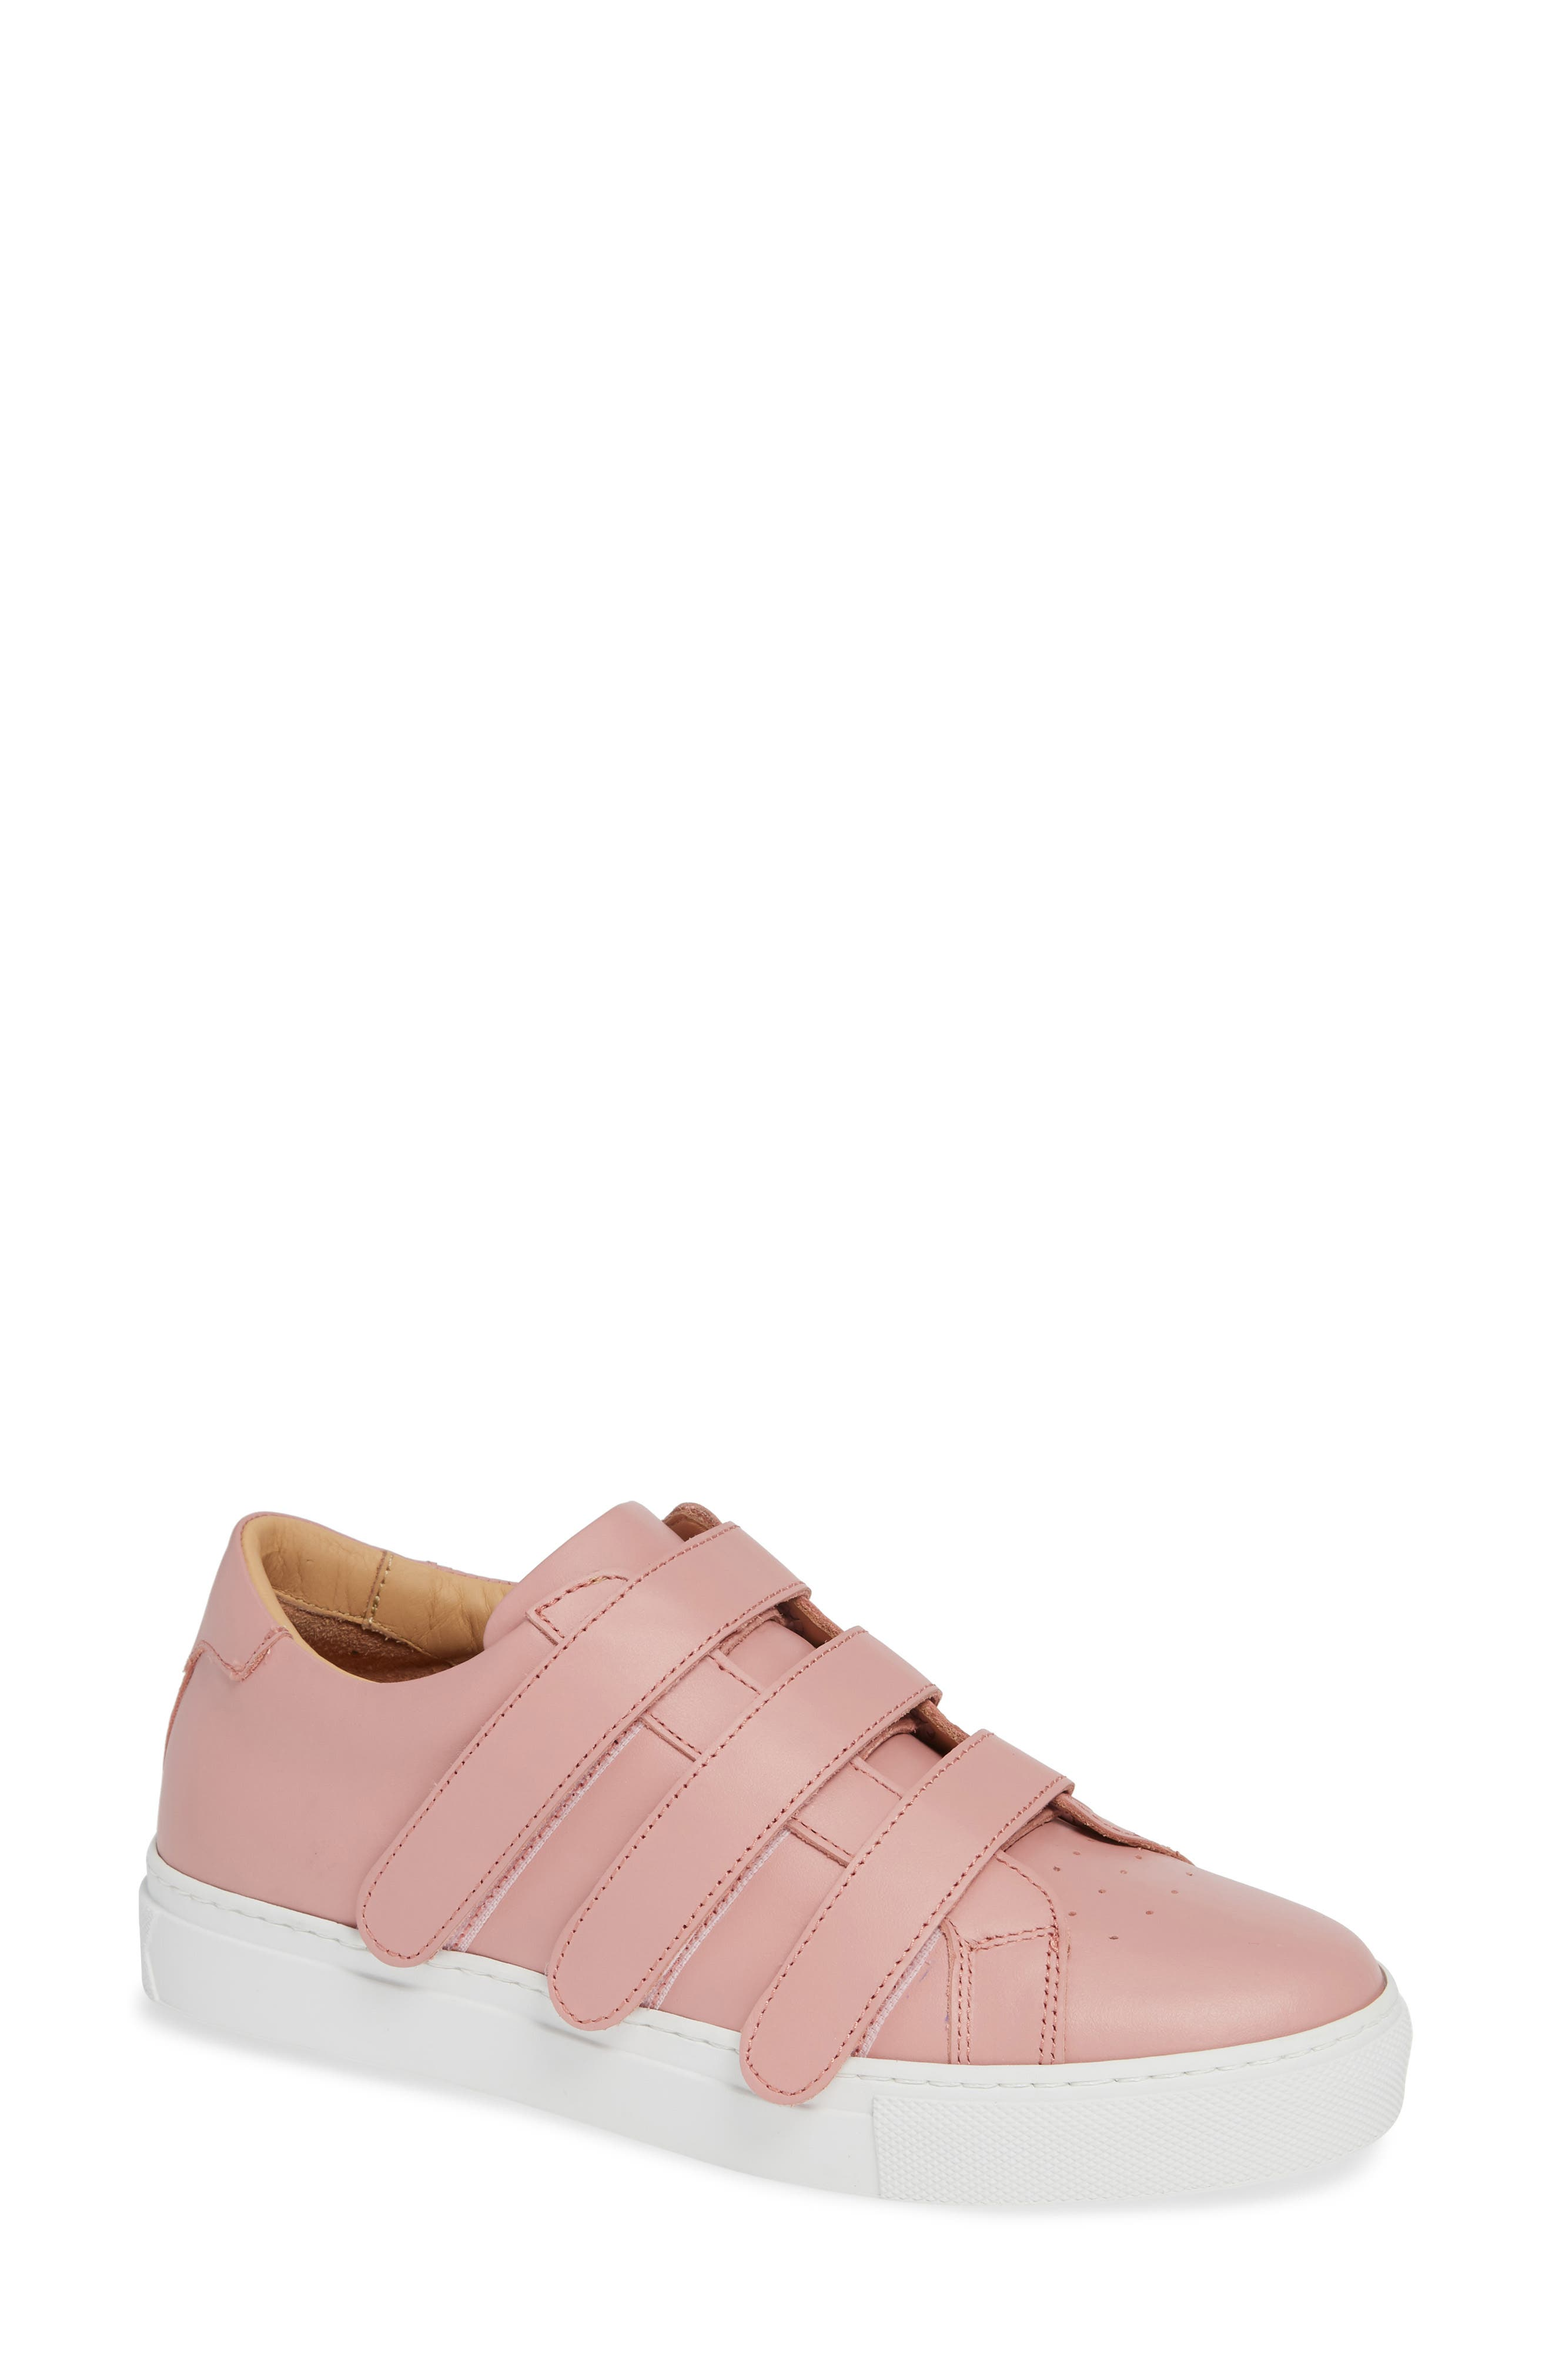 Nick Wooster x GREATS Wooster Royale Sneaker, Main, color, 651